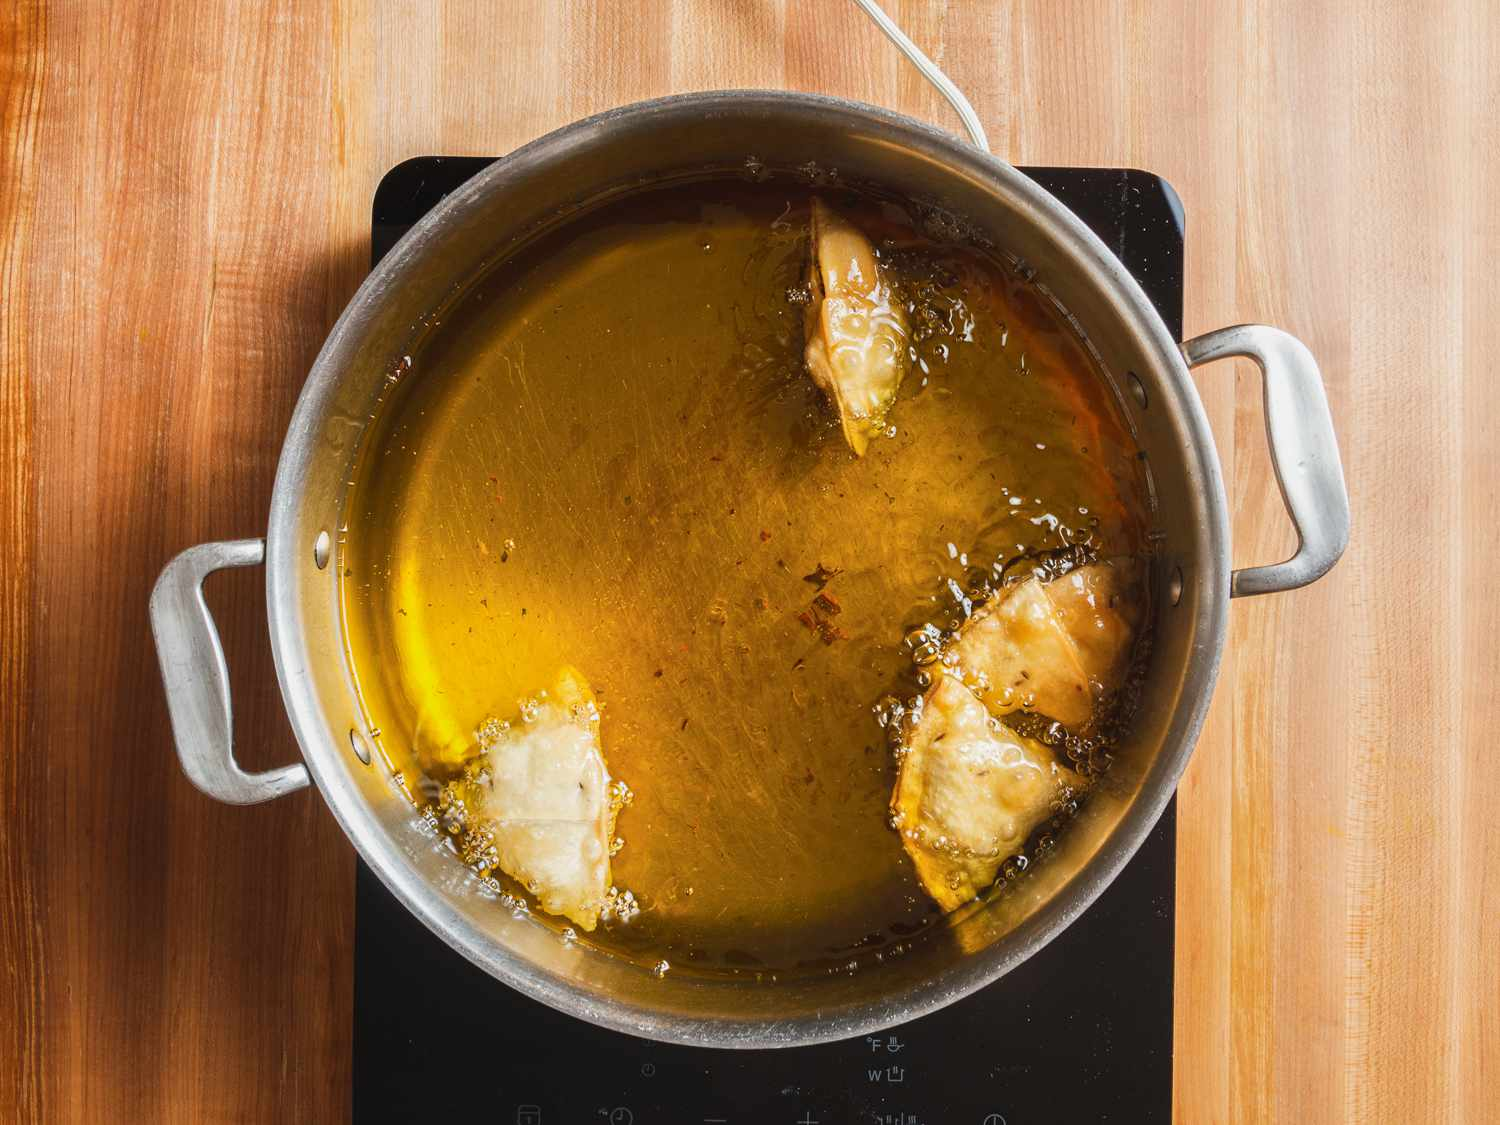 Kheema samosas viewed from overhead, frying in a pot of oil